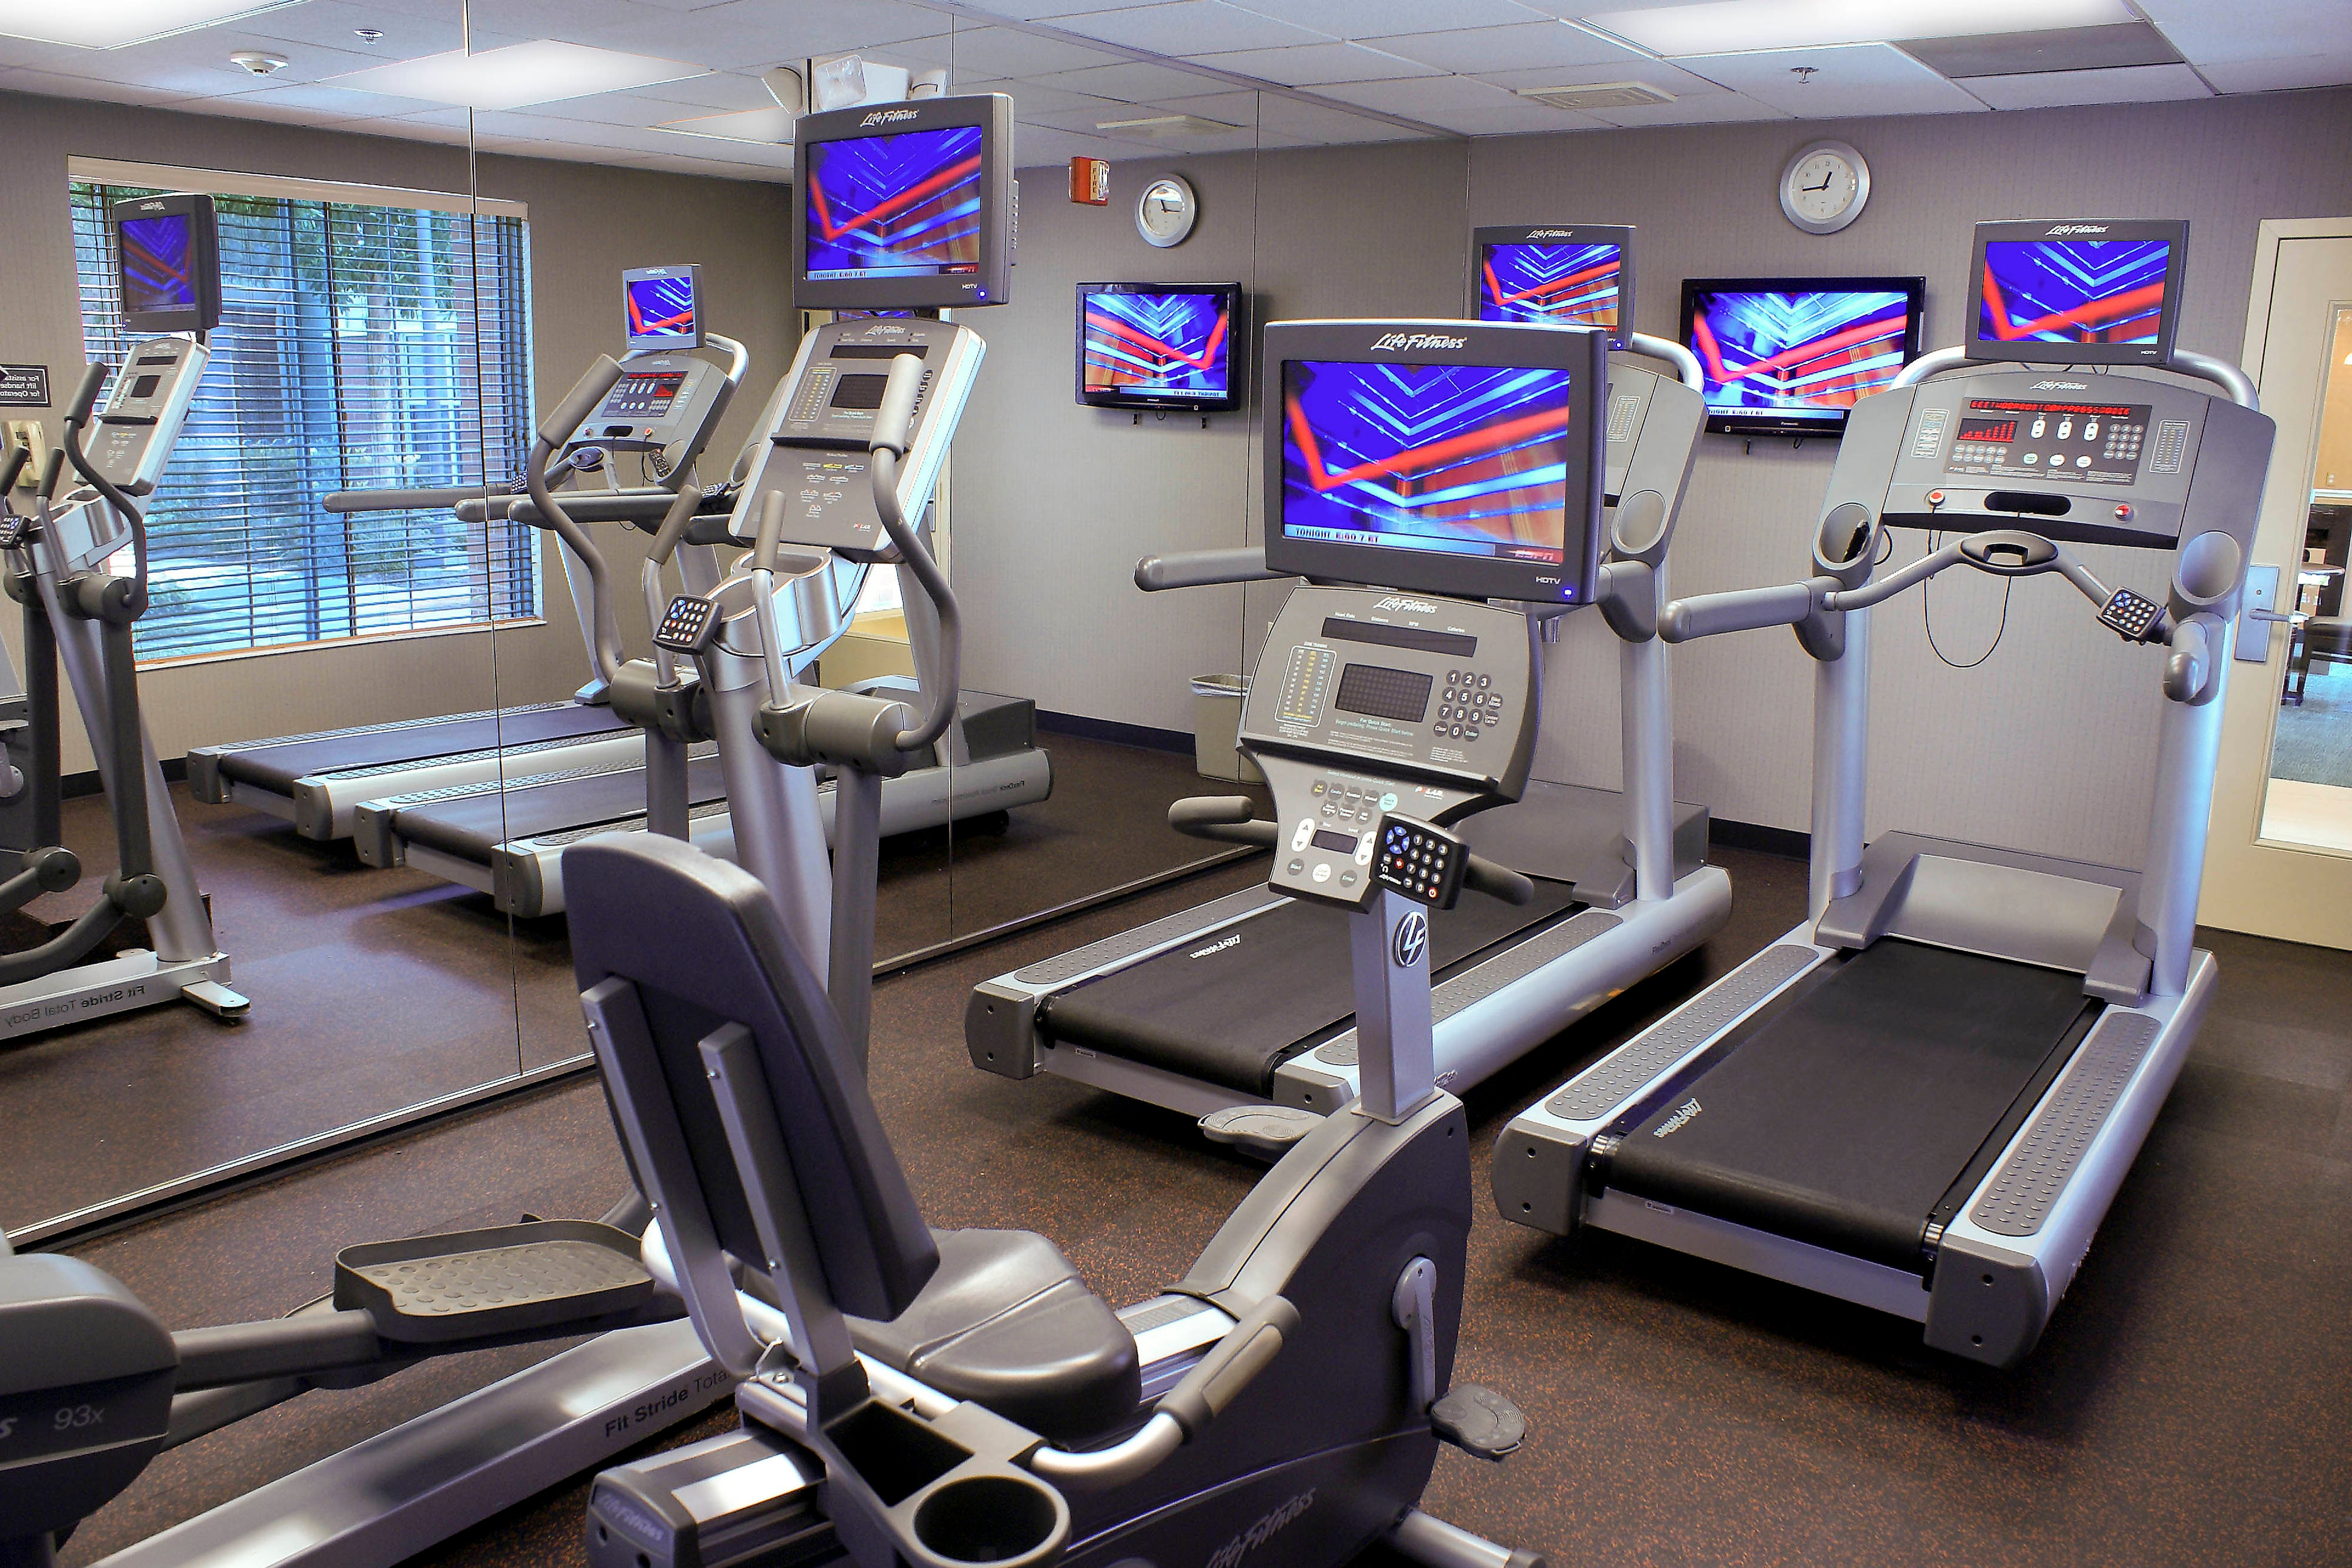 Milpitas Hotel Fitness Center